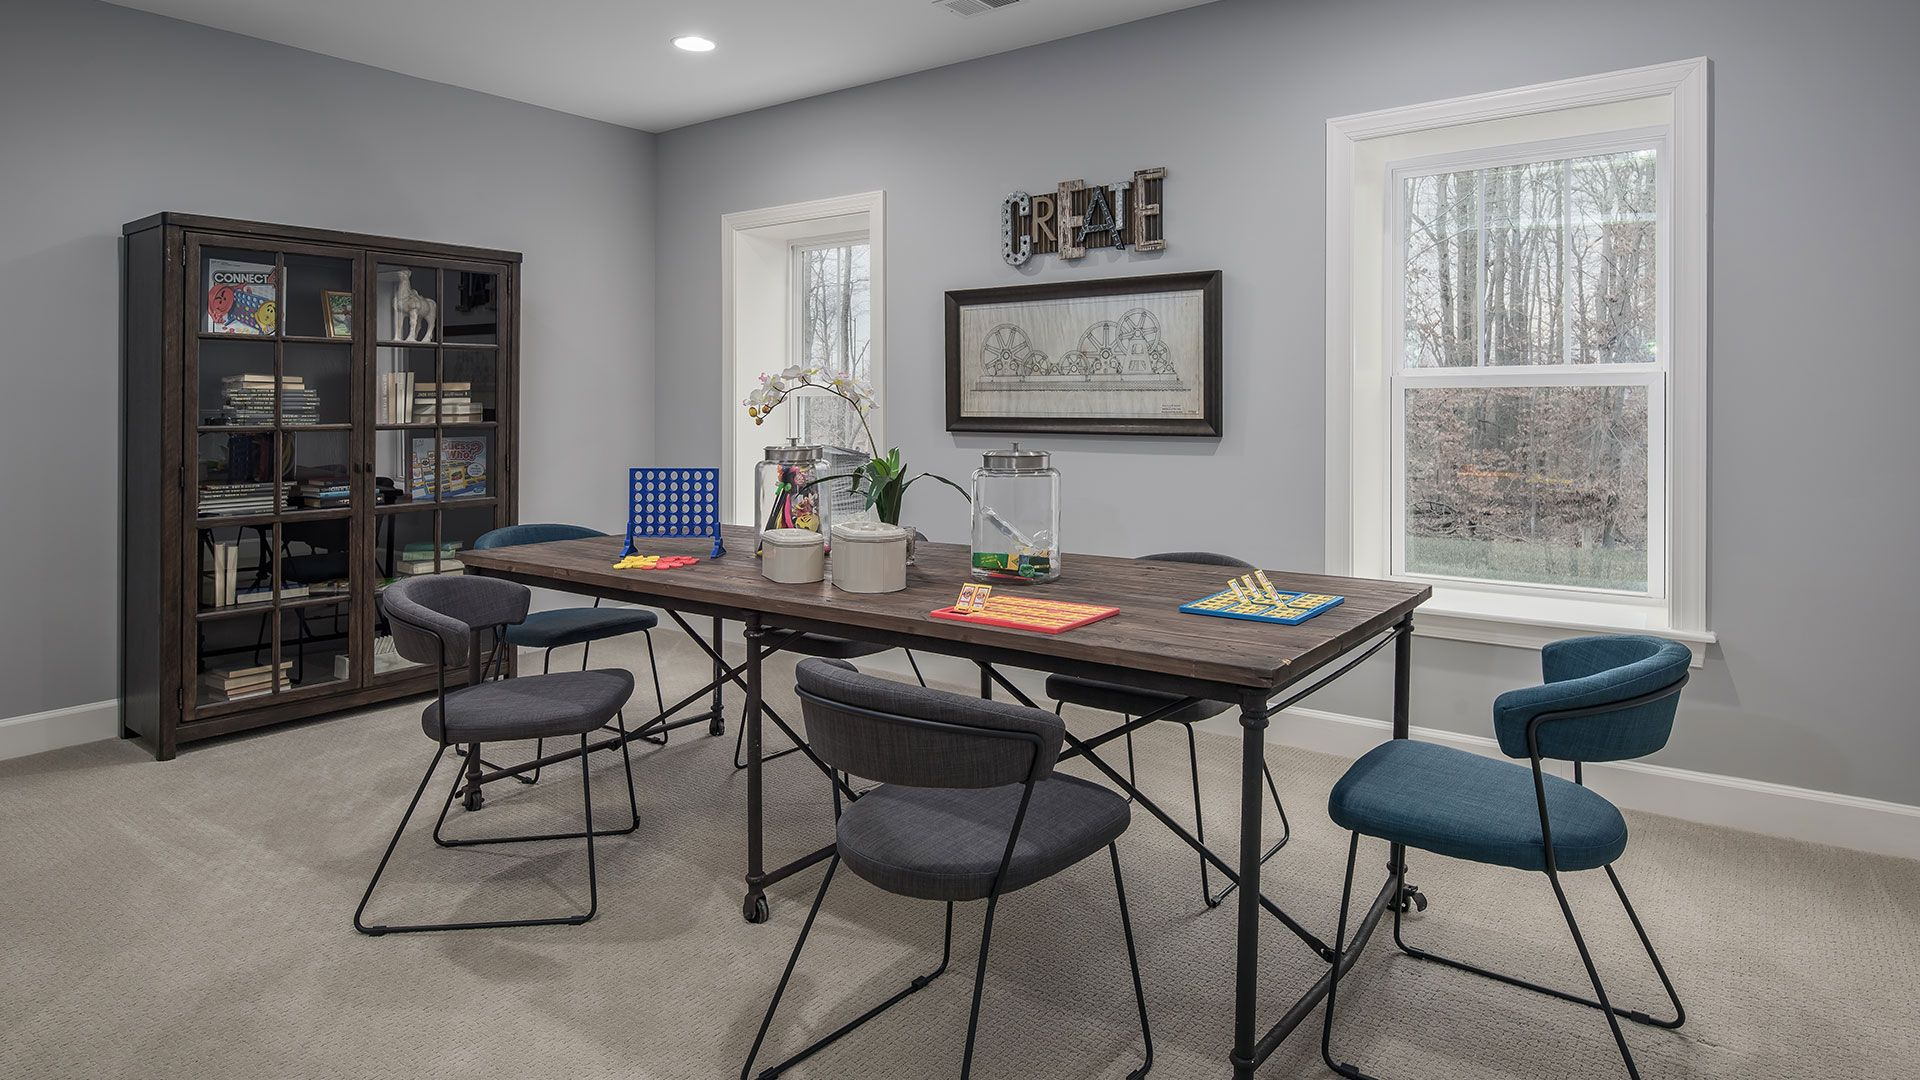 Living Area featured in the Breckenridge By Stanley Martin Homes in Baltimore, MD